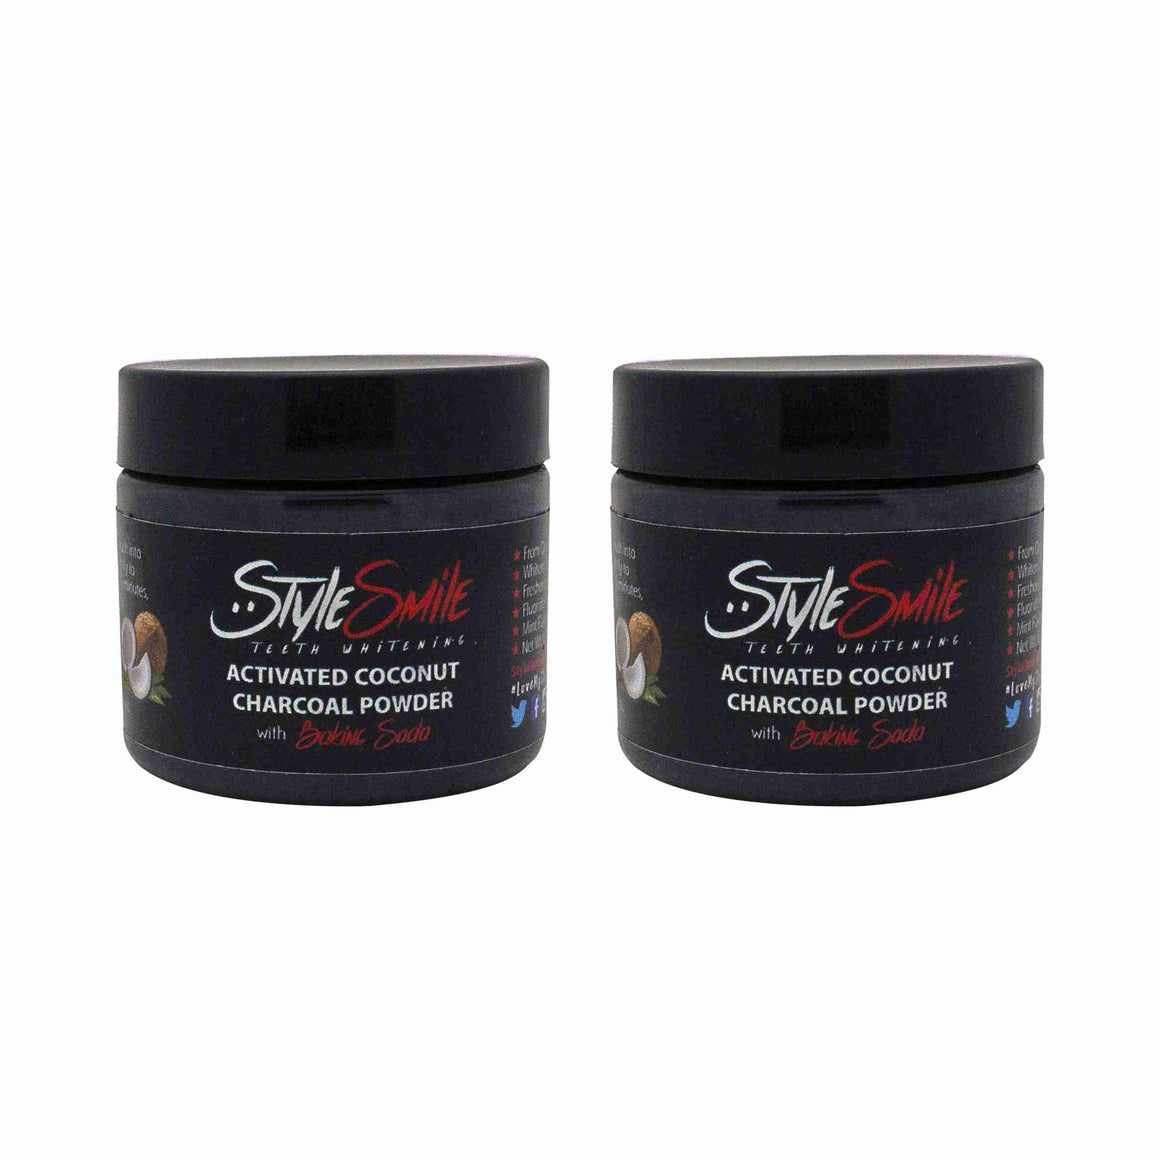 Activated Charcoal Teeth Whitening Powder (Groupon - 2 Jars)